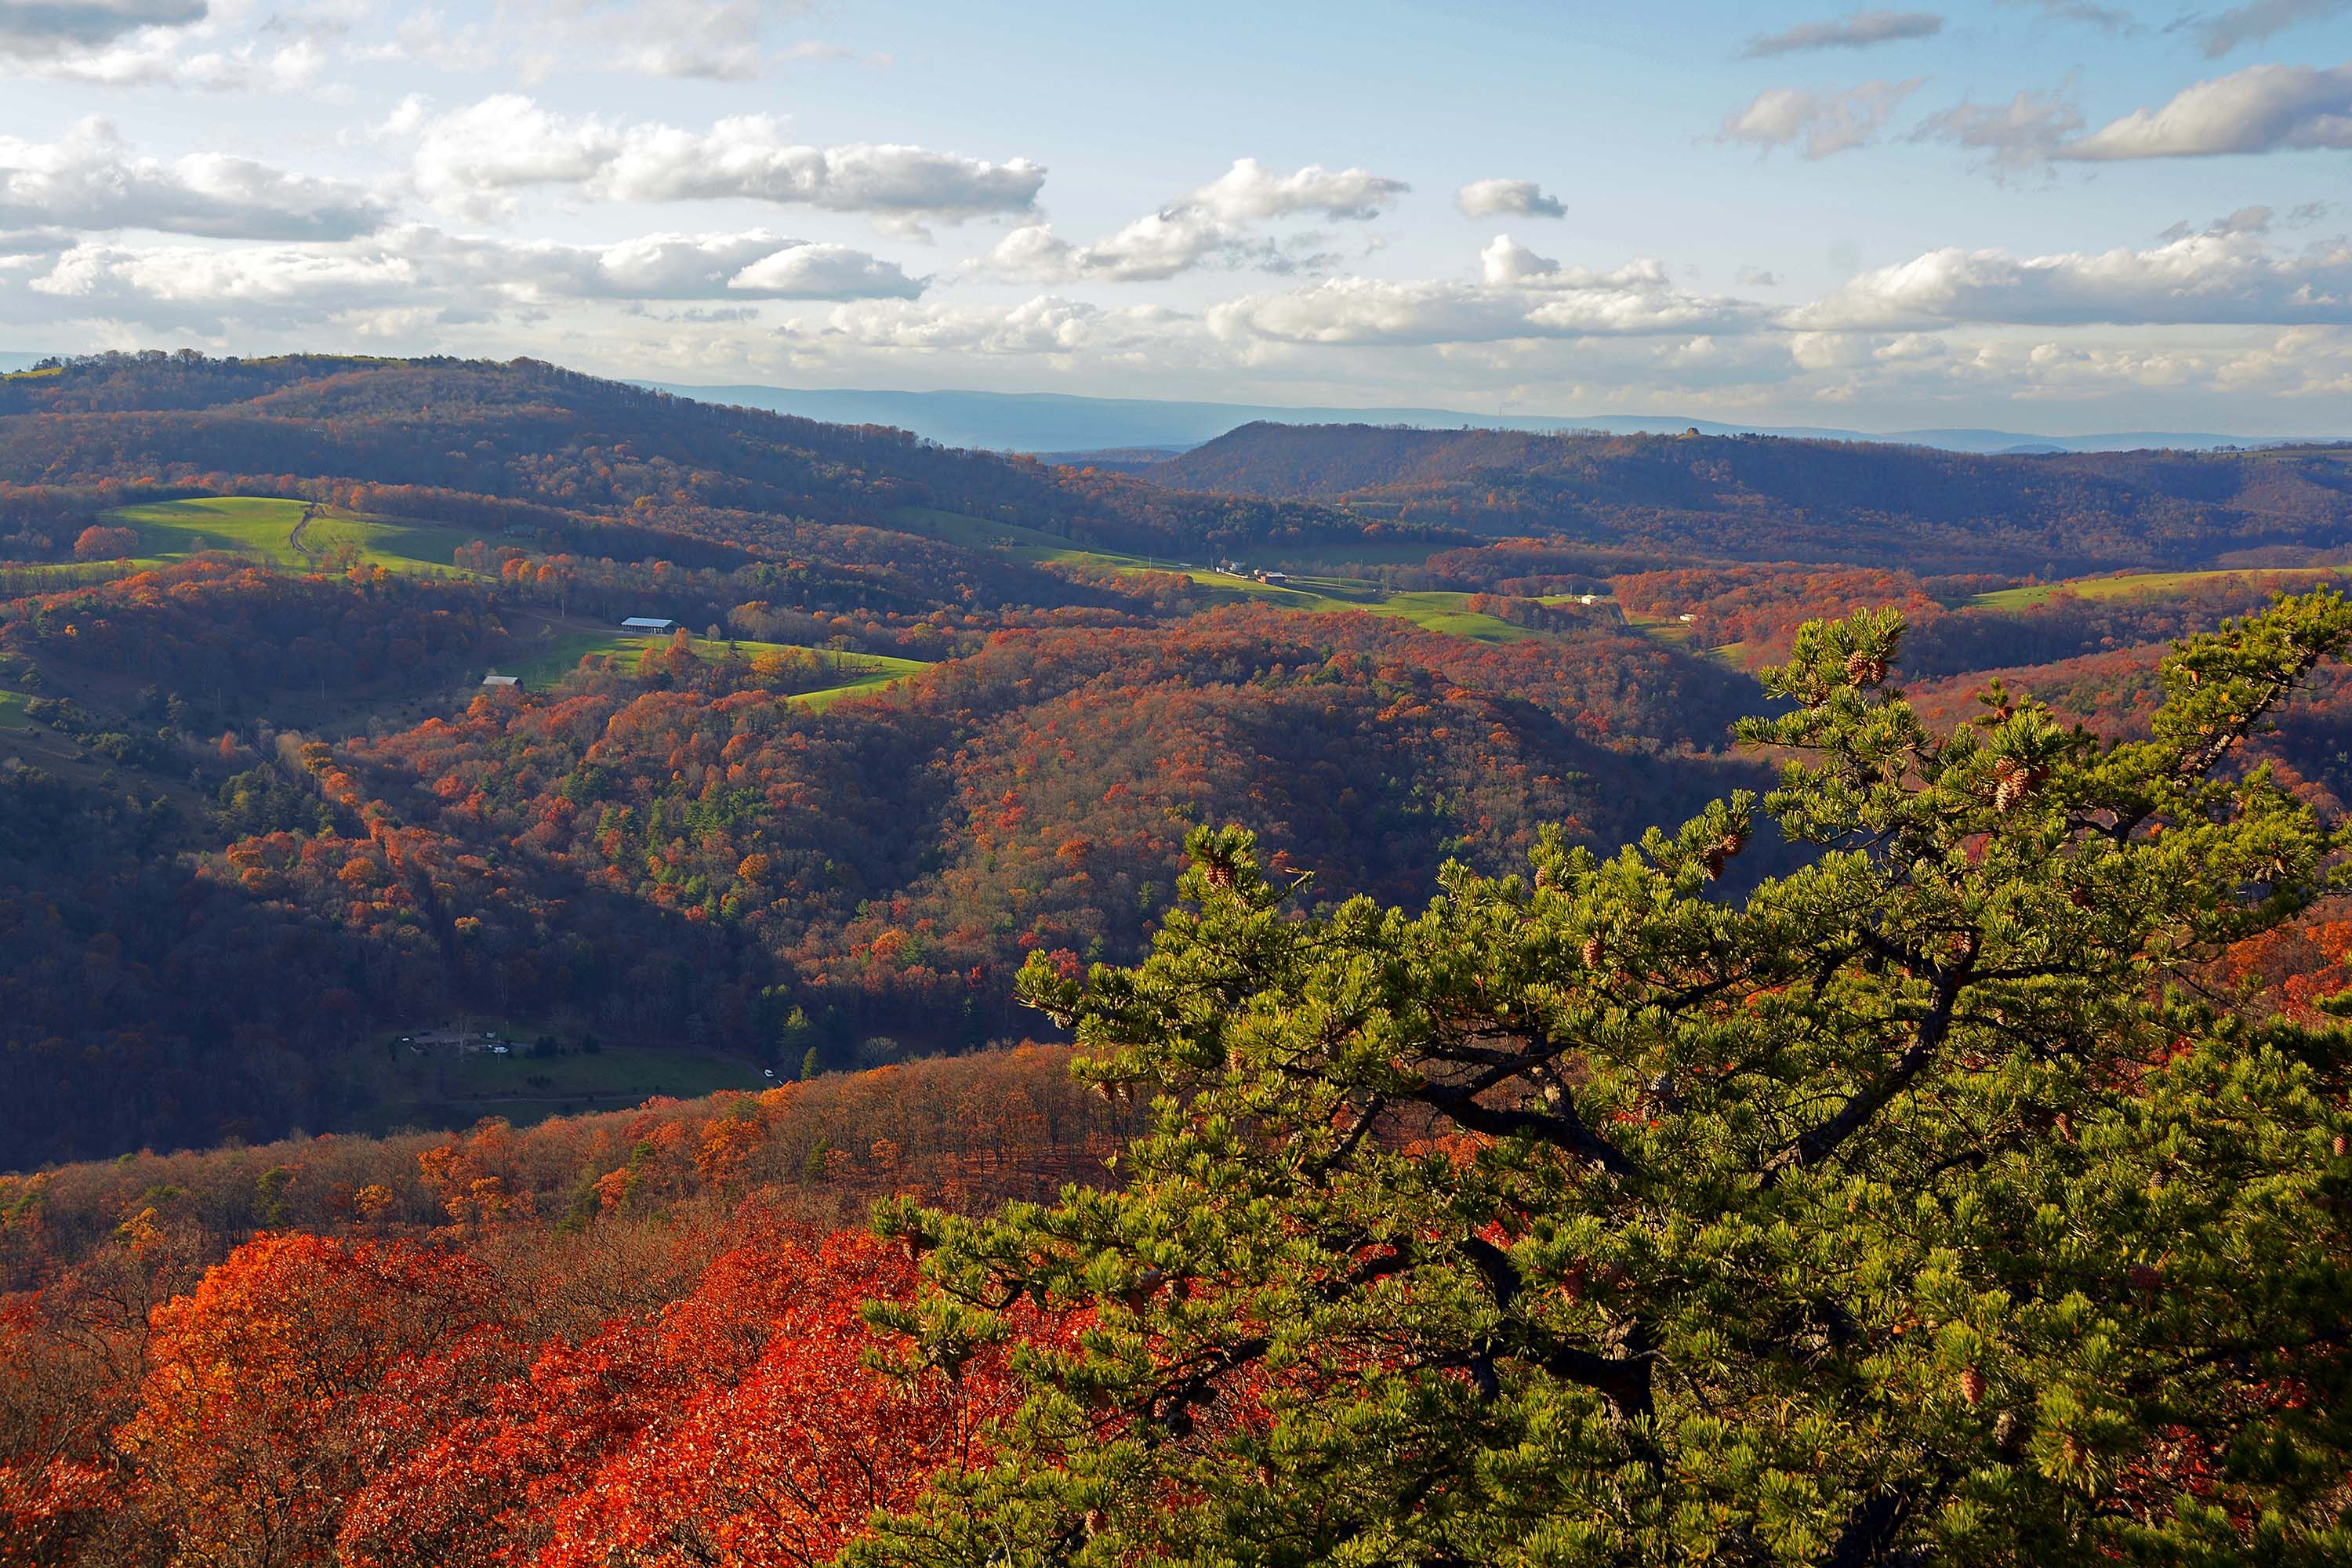 WV MetroNews – Fall foliage underway in state parks